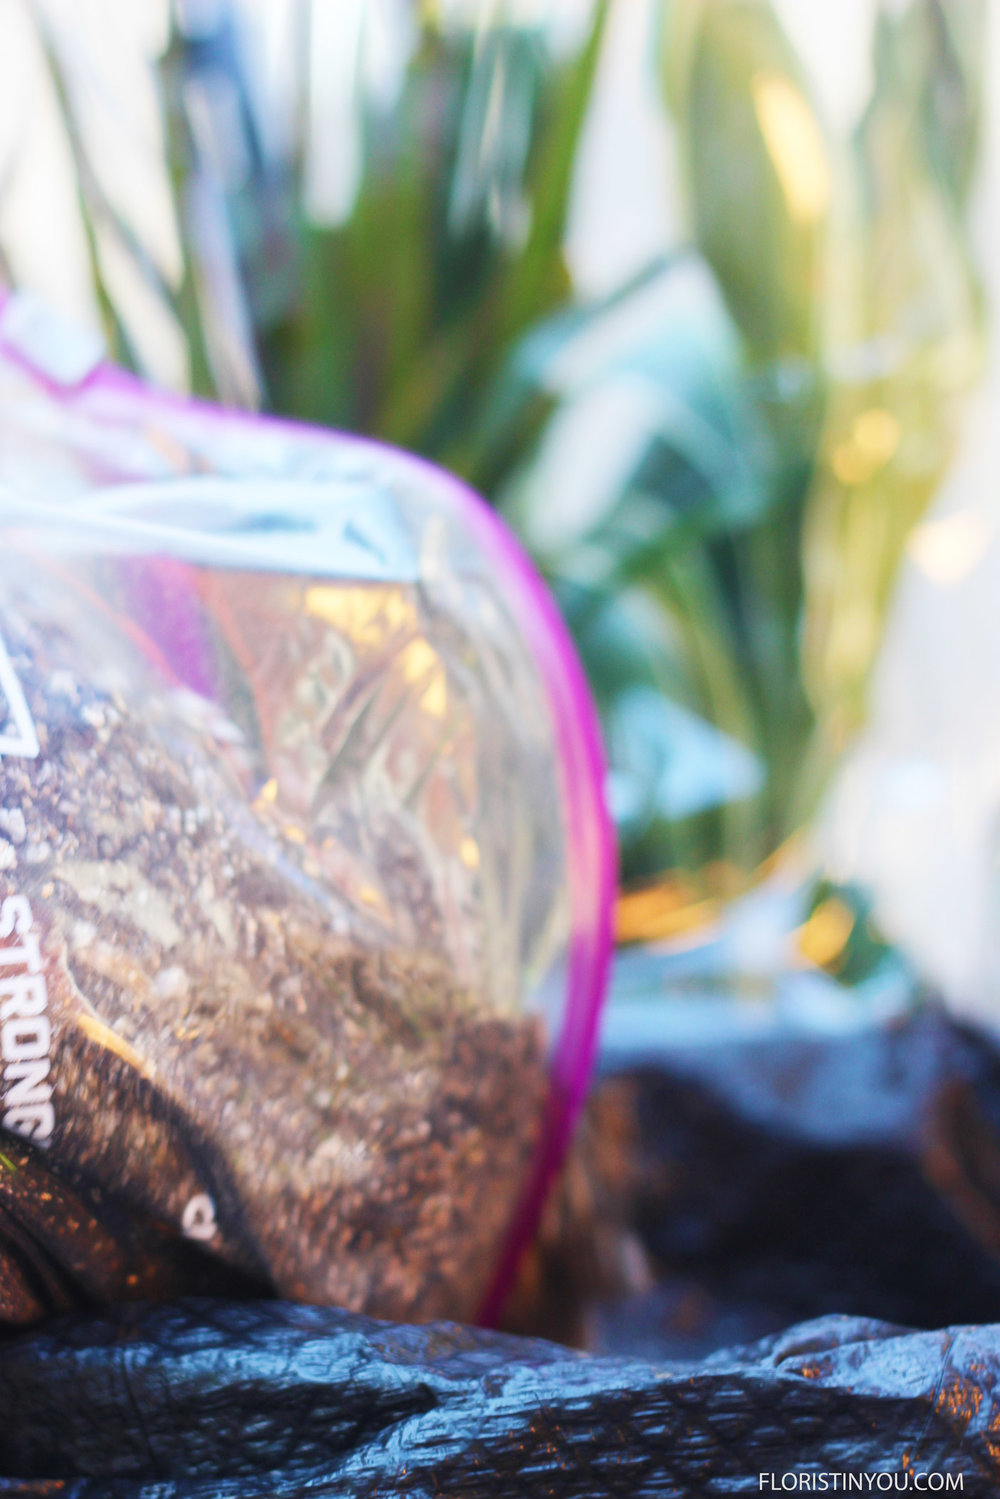 Put garbage bag in vase. Add potting mix and fill to 3/4 way to the top.